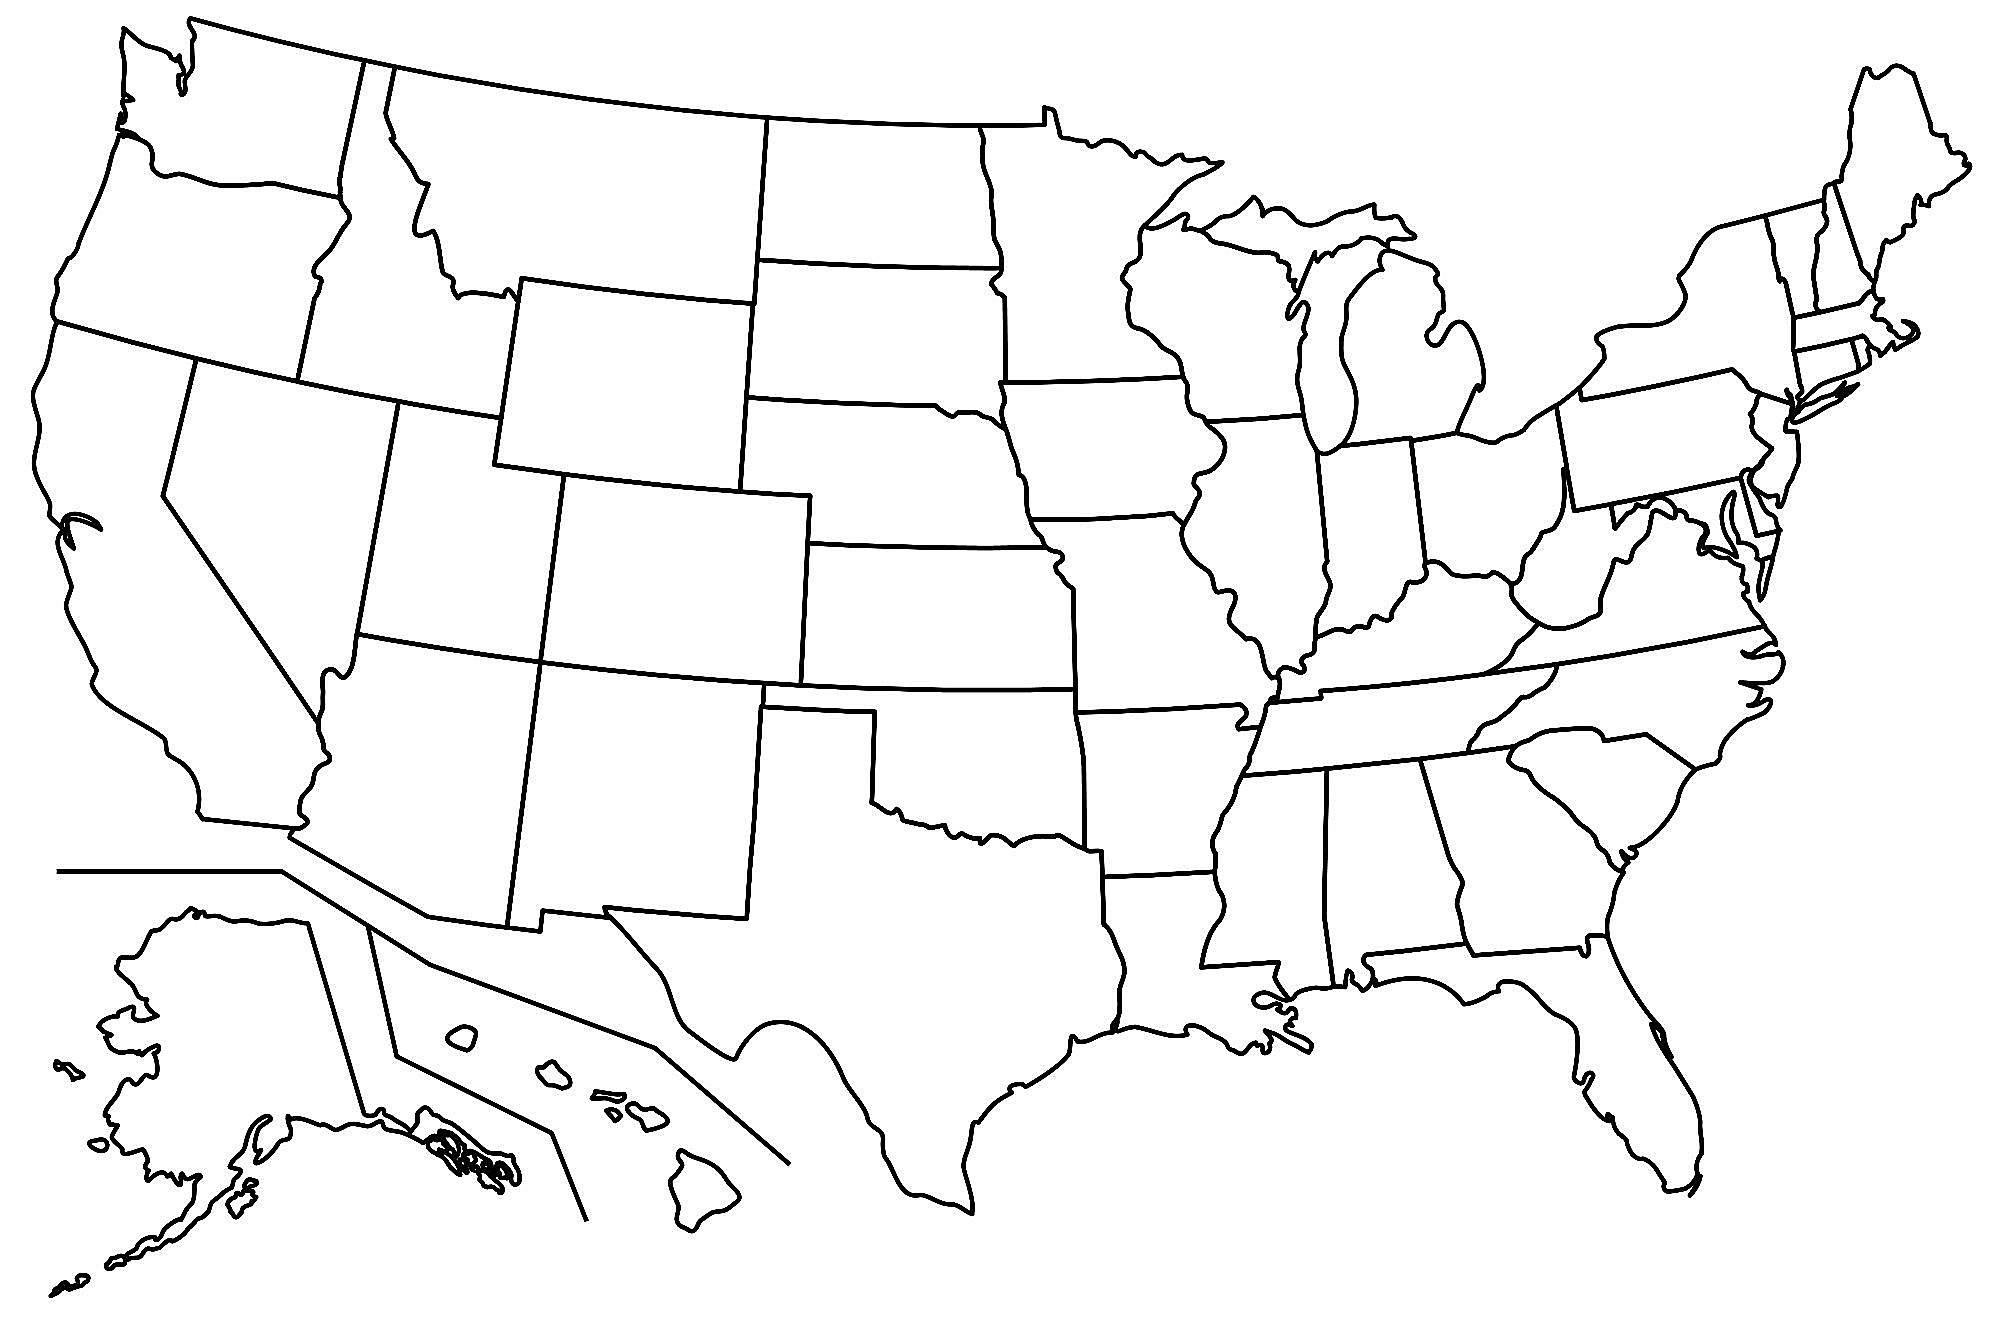 Blank Maps Of The US And Other Countries - Blank us map quiz